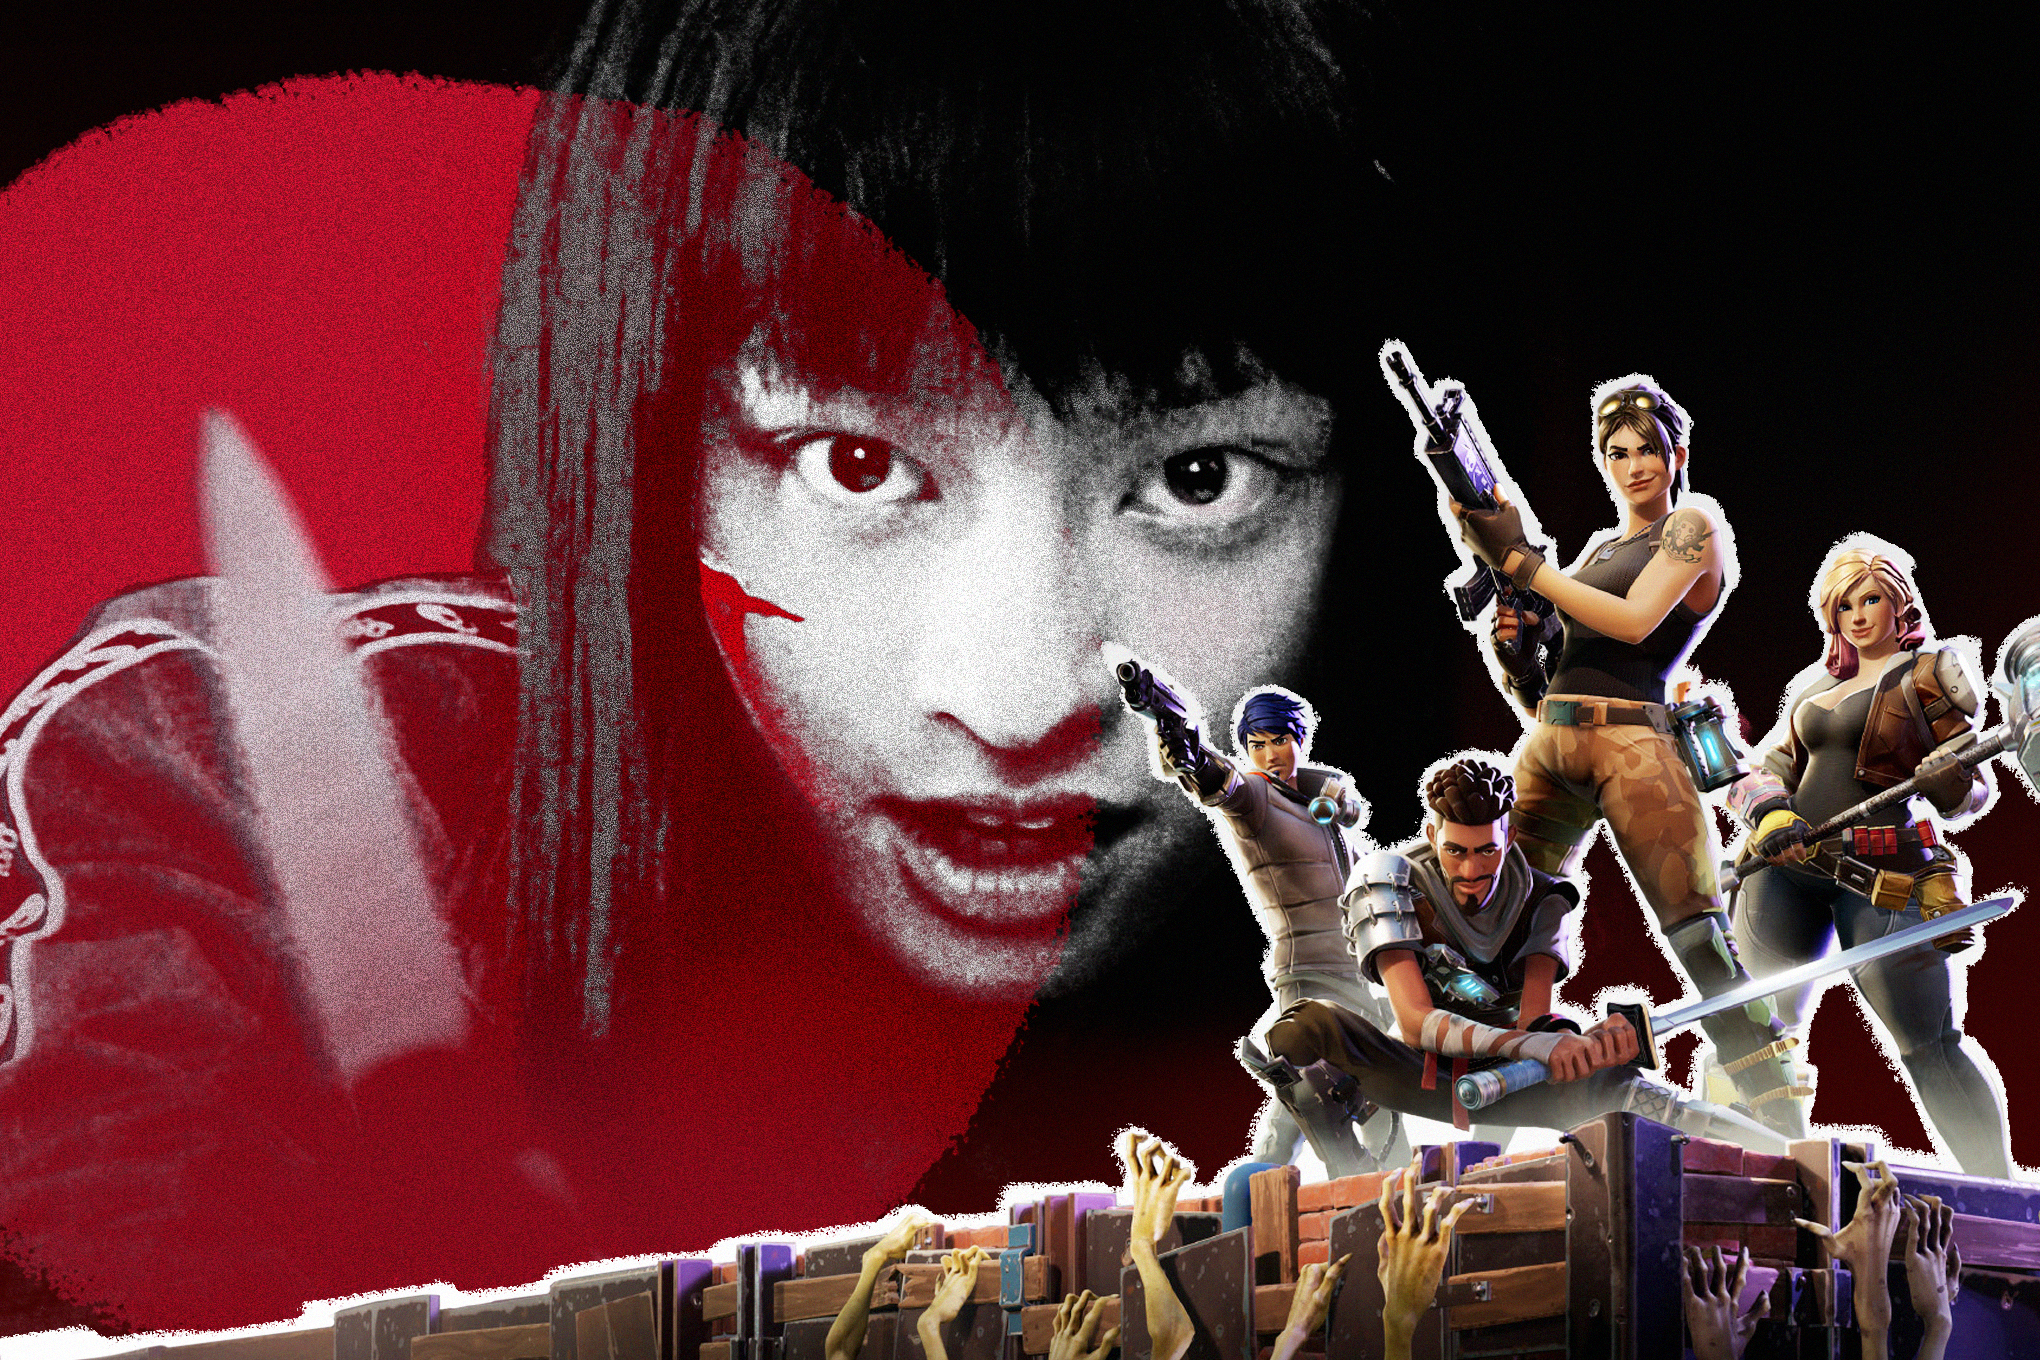 Hunting down the true origins of the battle royale craze